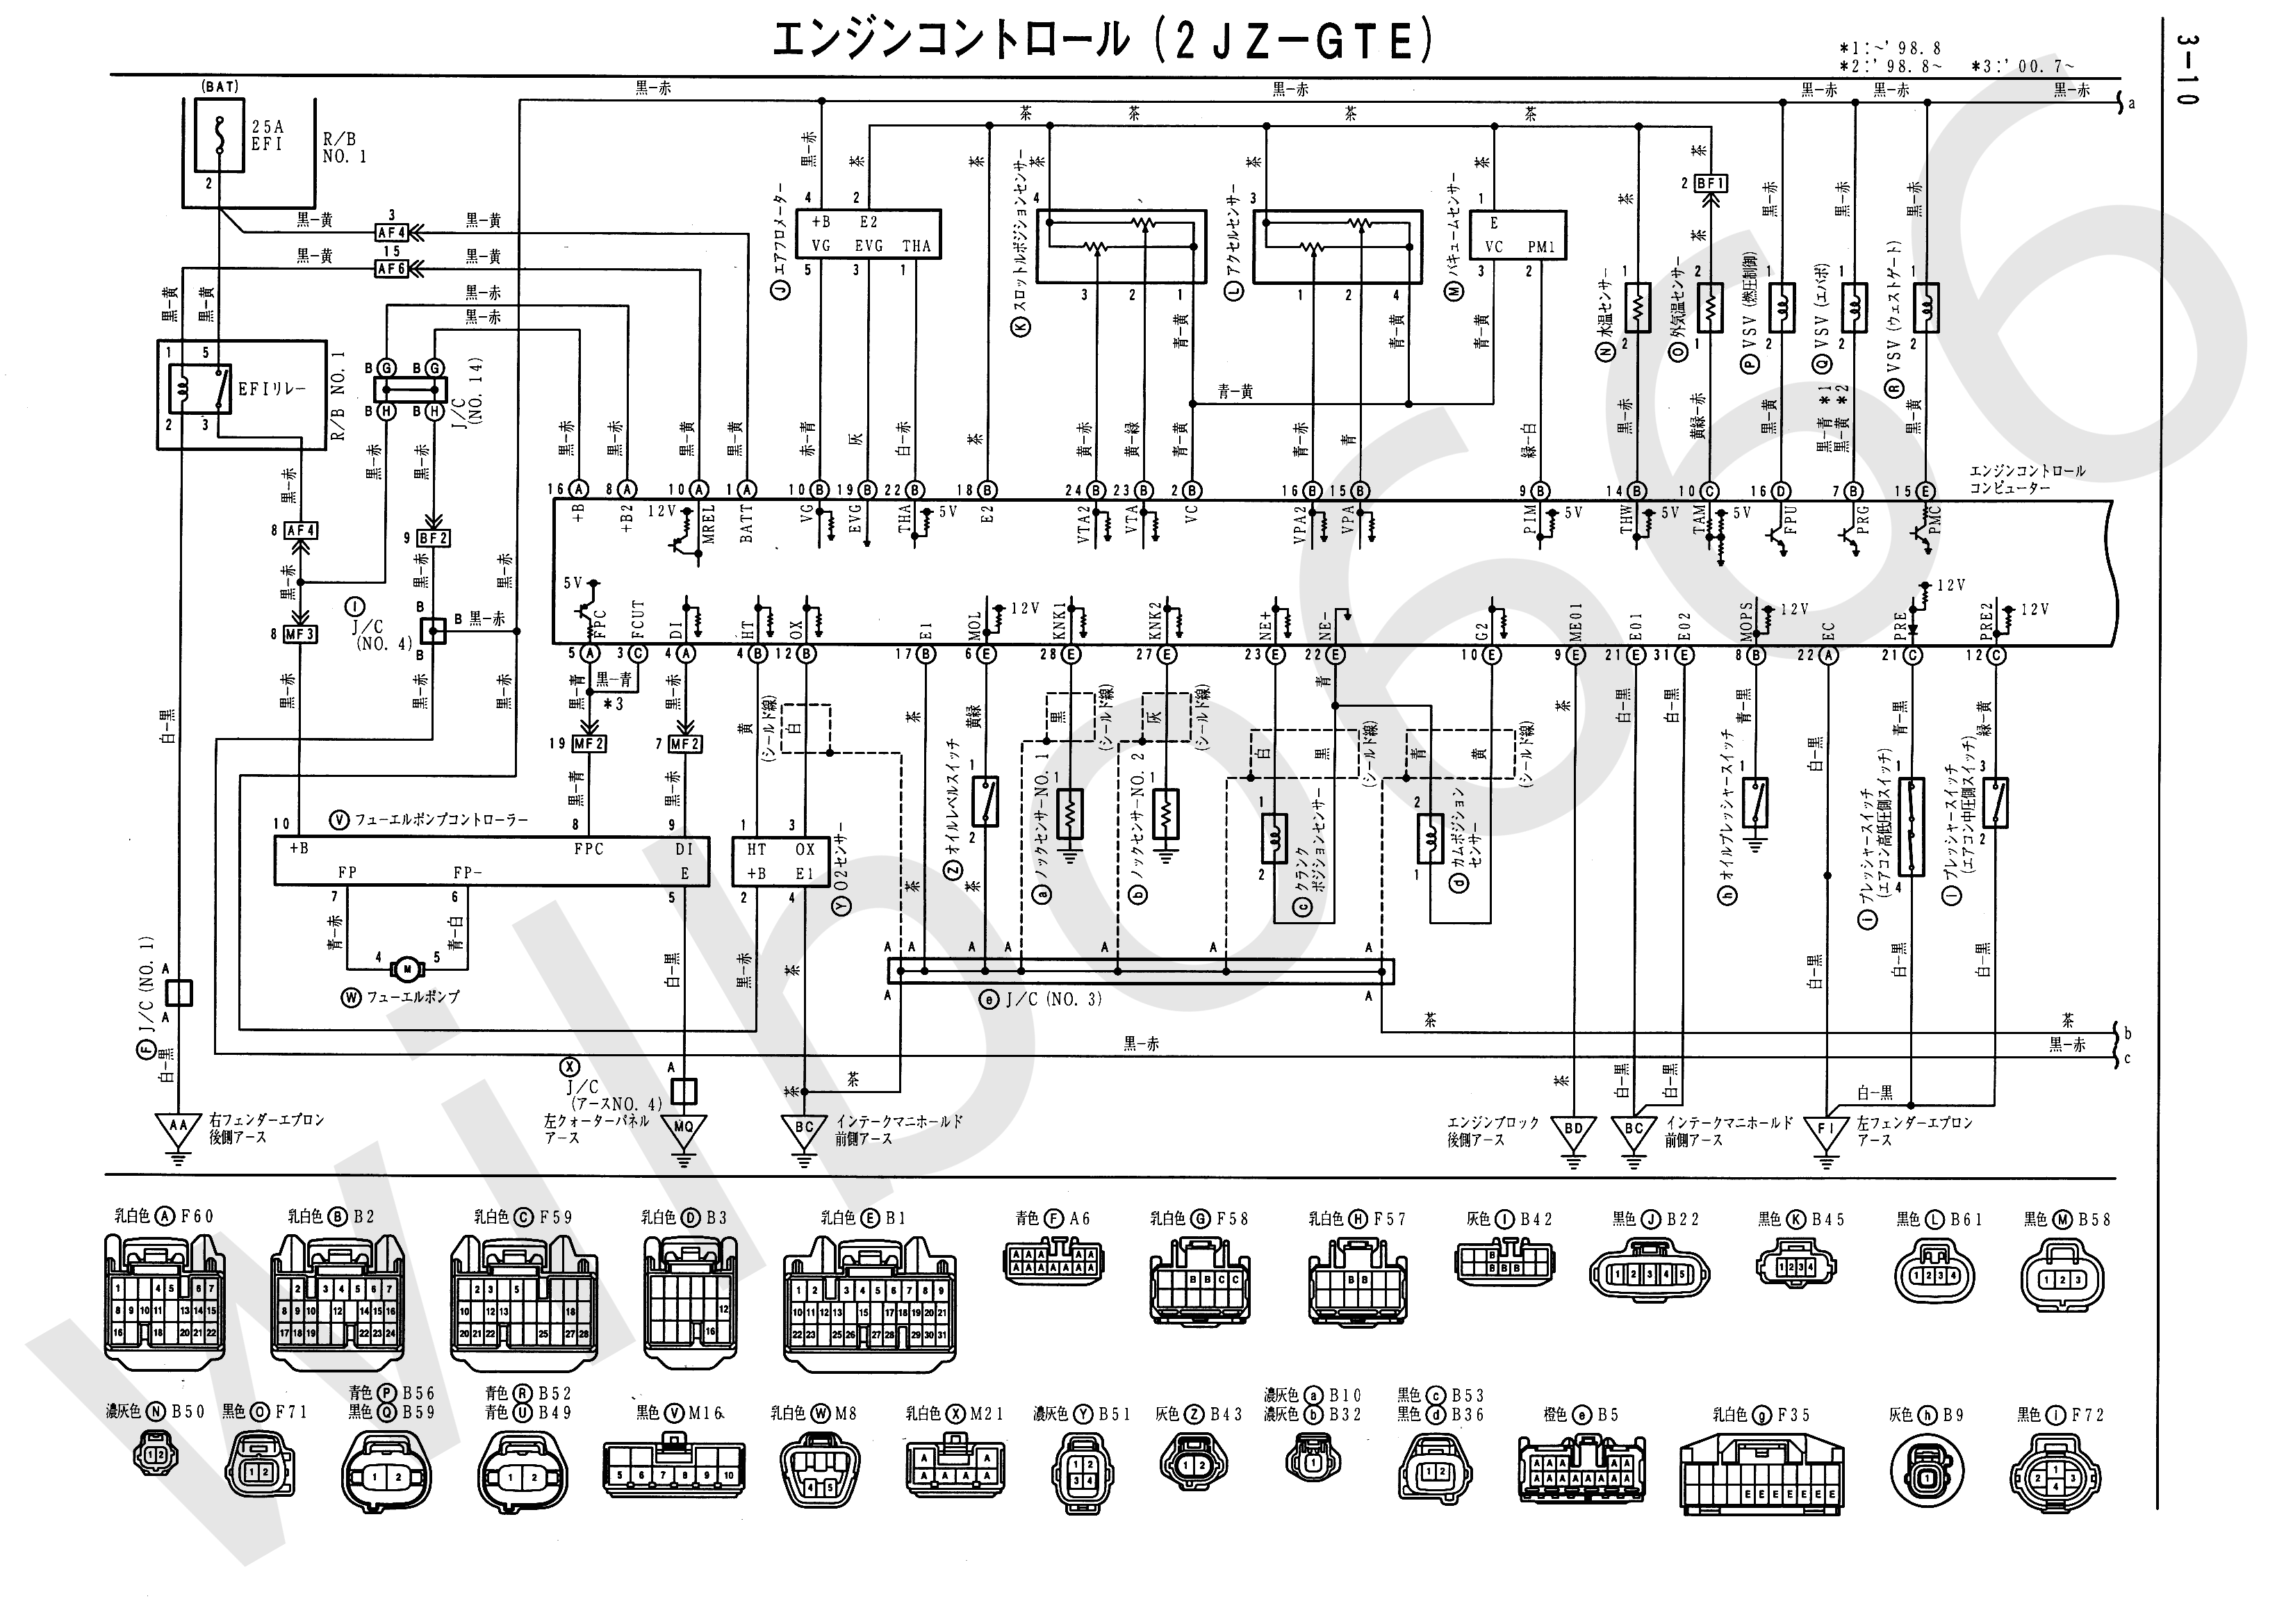 Wiring Diagram 2002 Honda Gx340 Engine Parts Schematic Diagrams Gx390 Gx610 Resource Free Gxv620 As